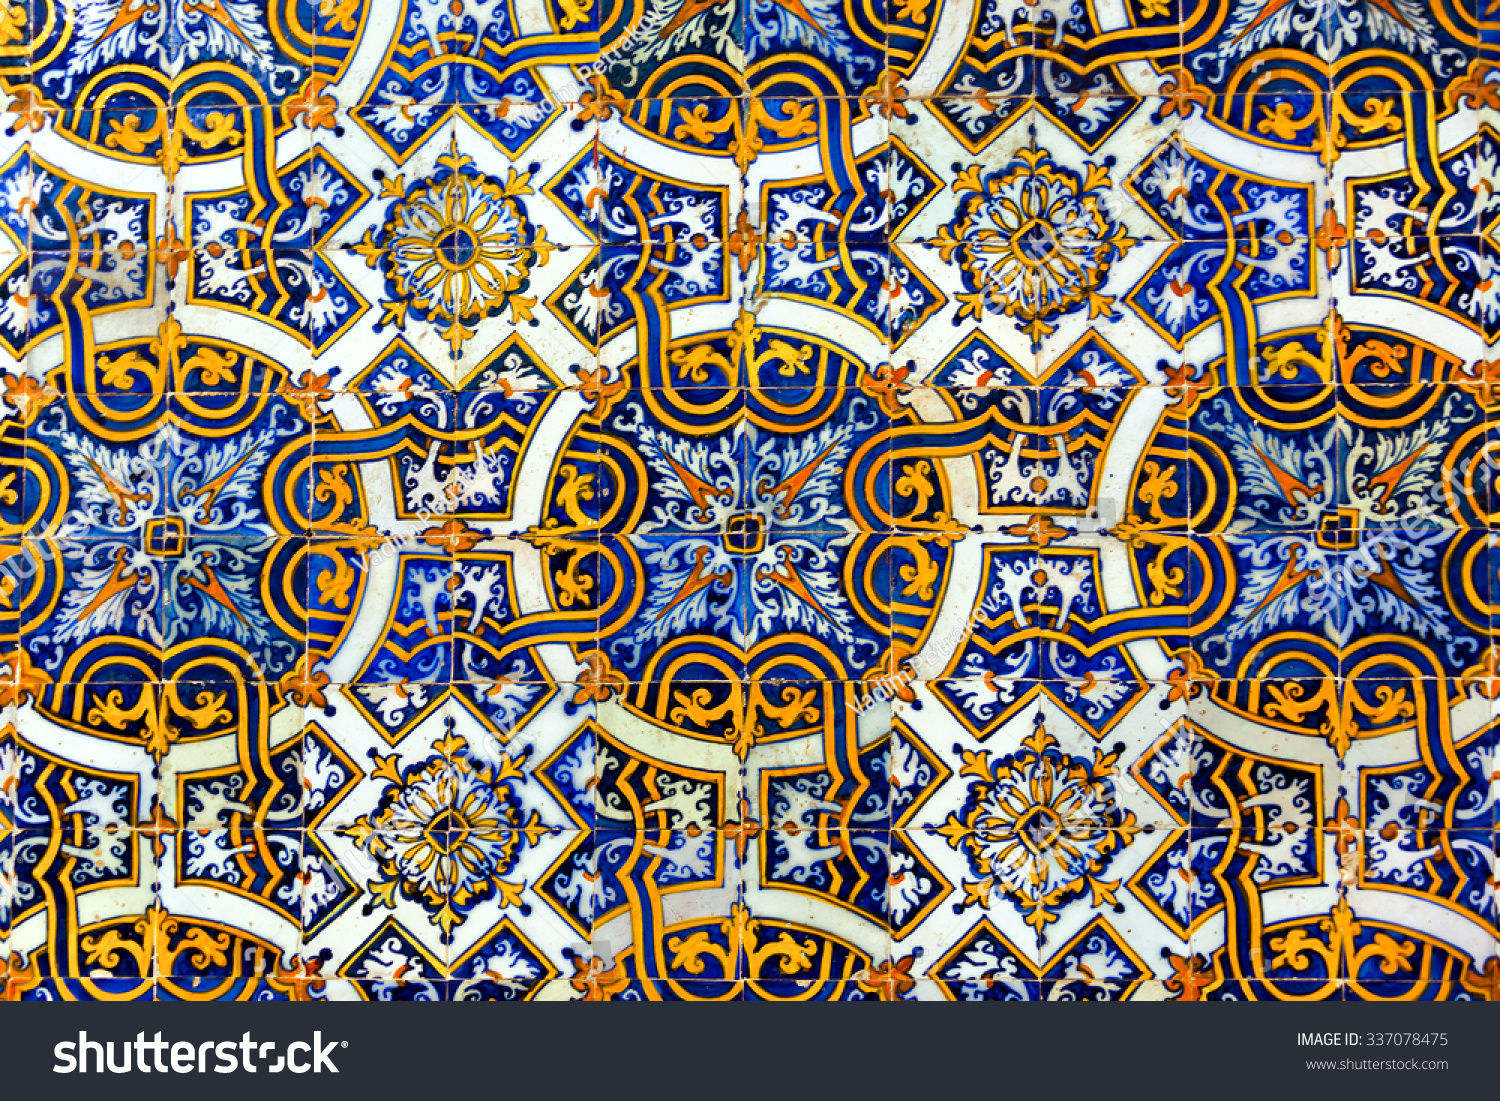 Azulejos Vintage Azulejos Ancient Tiles Old University Stock Photo